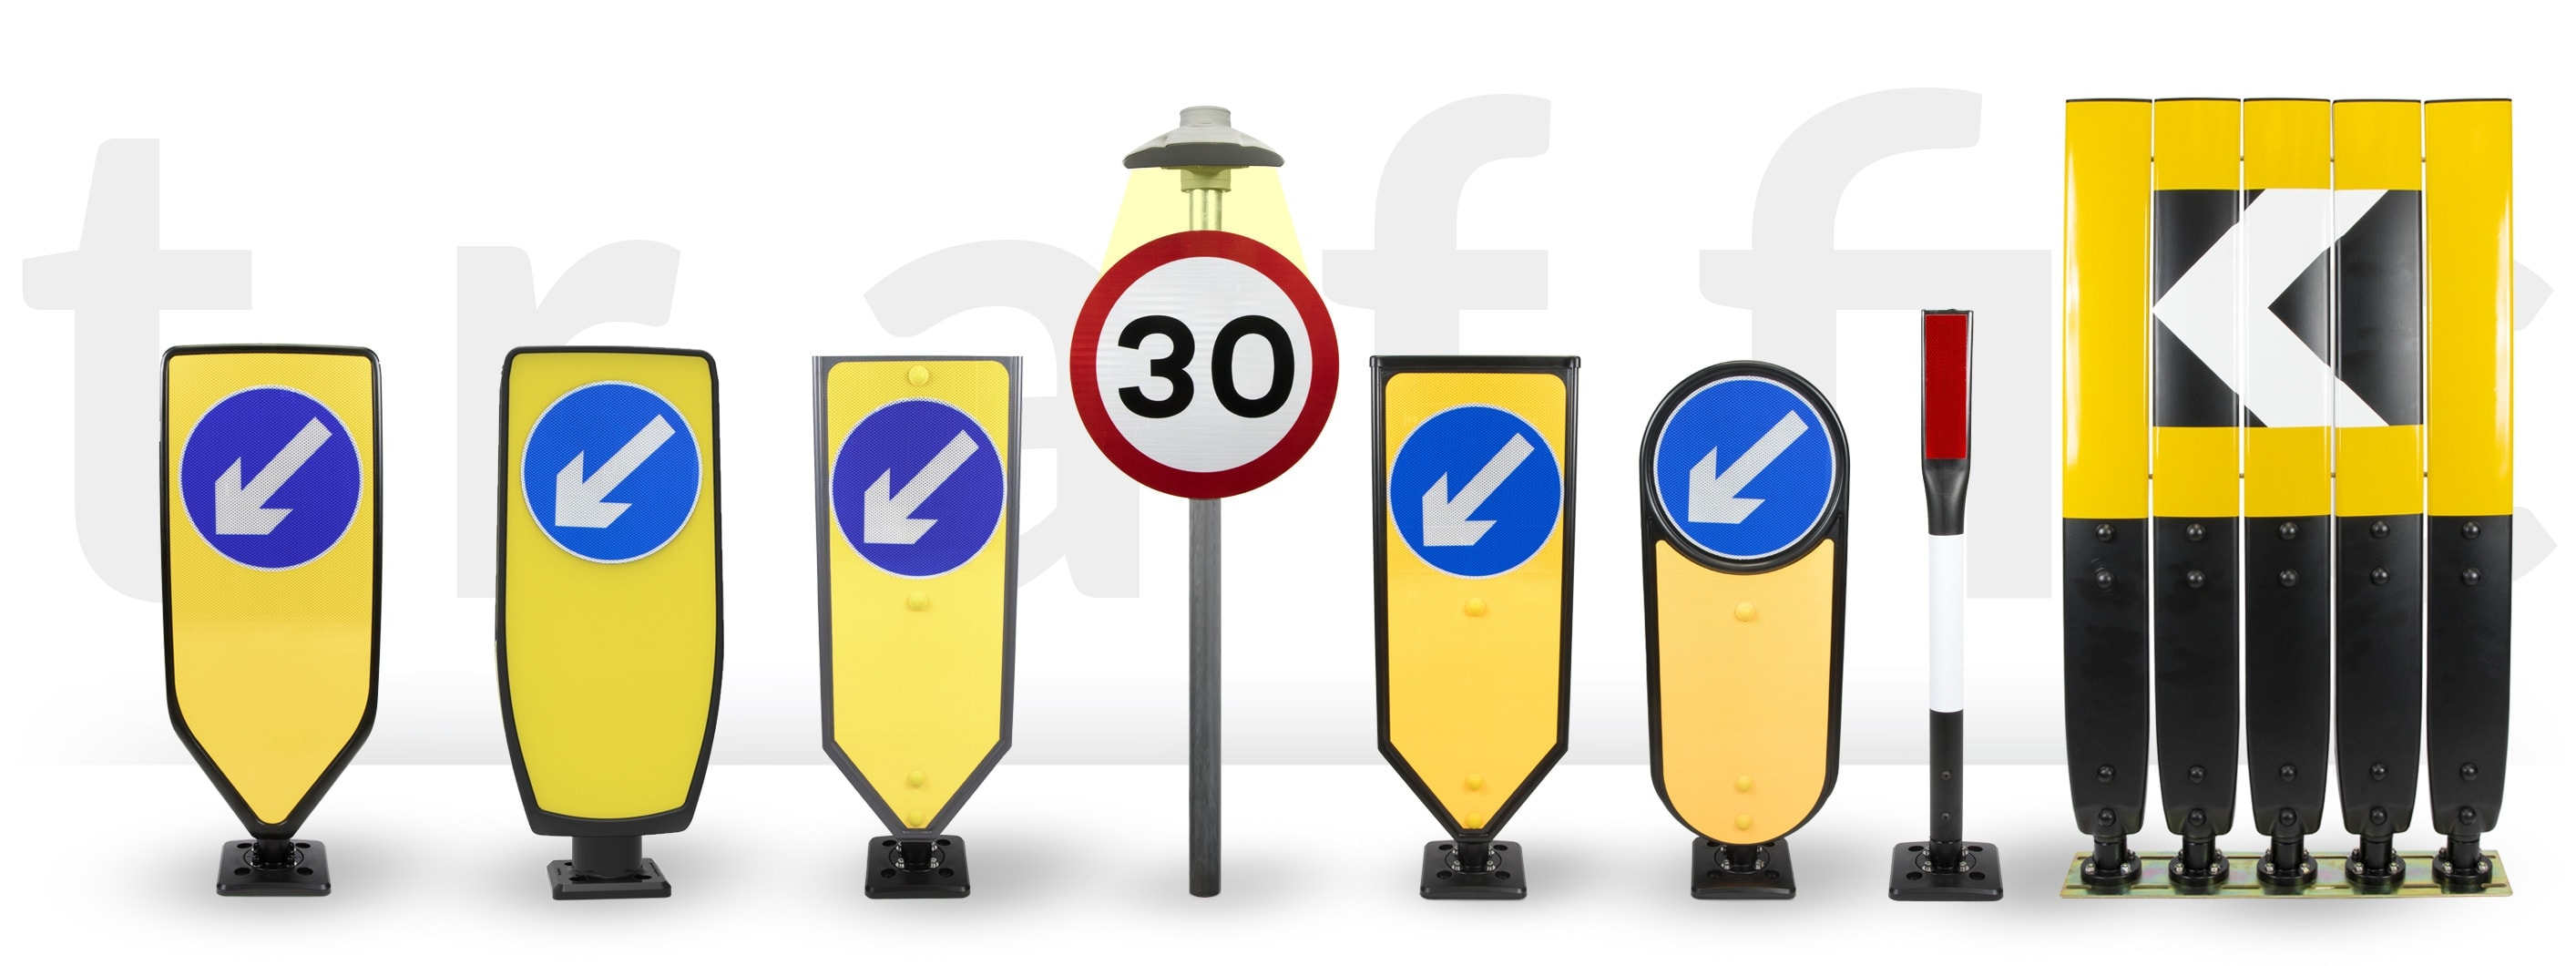 TMP range of traffic safety products